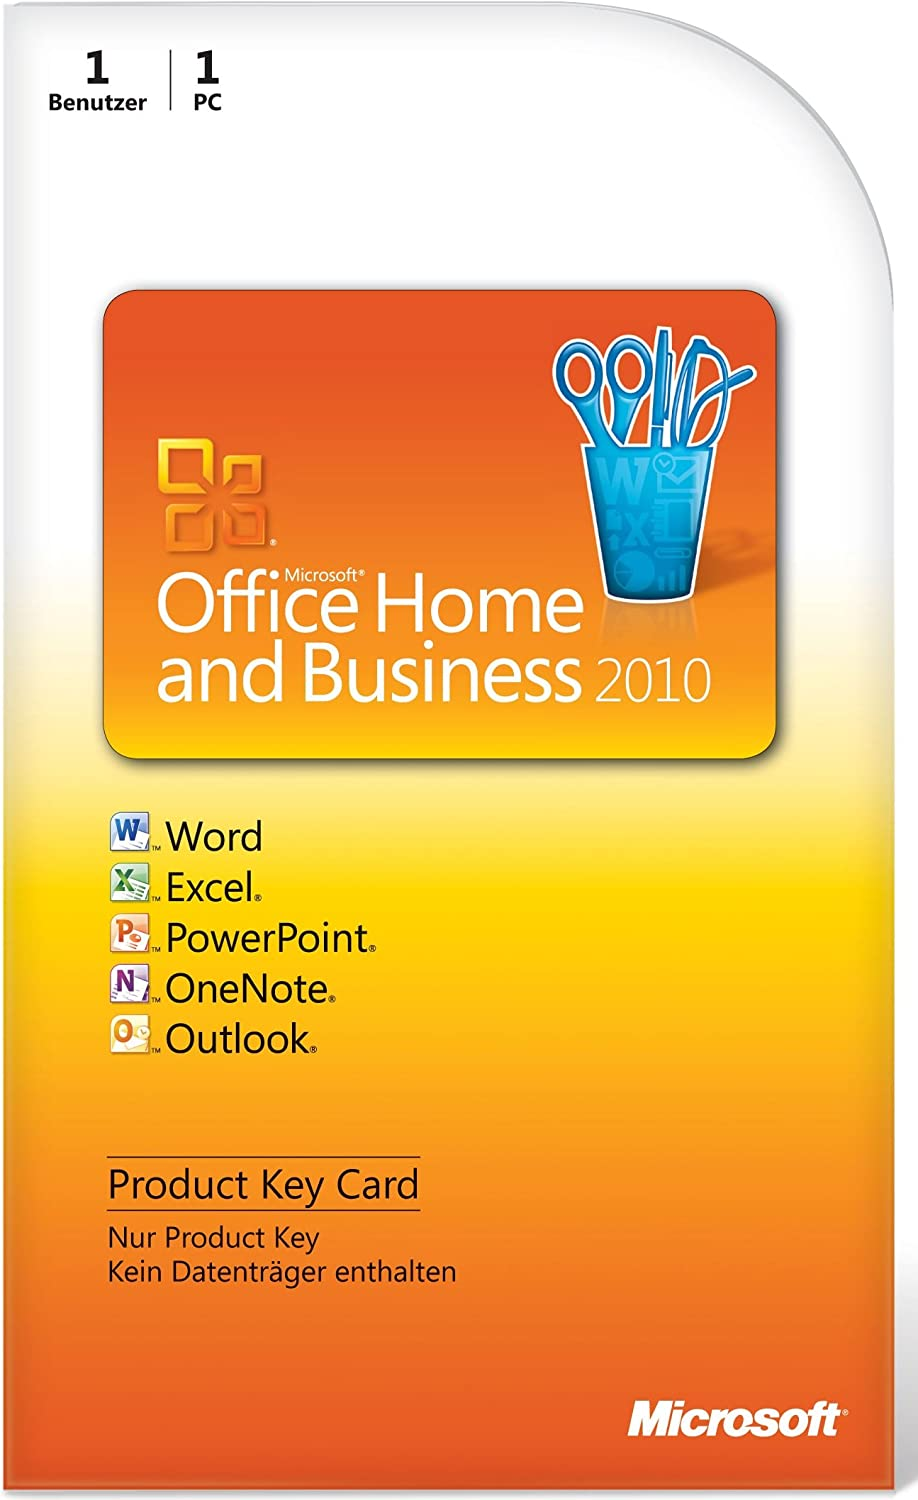 Microsoft Office Home & Business 2010 DE - Suites de programas (1 usuario(s), DEU, 3000 MB, 256 MB, 500 MHz): Amazon.es: Software